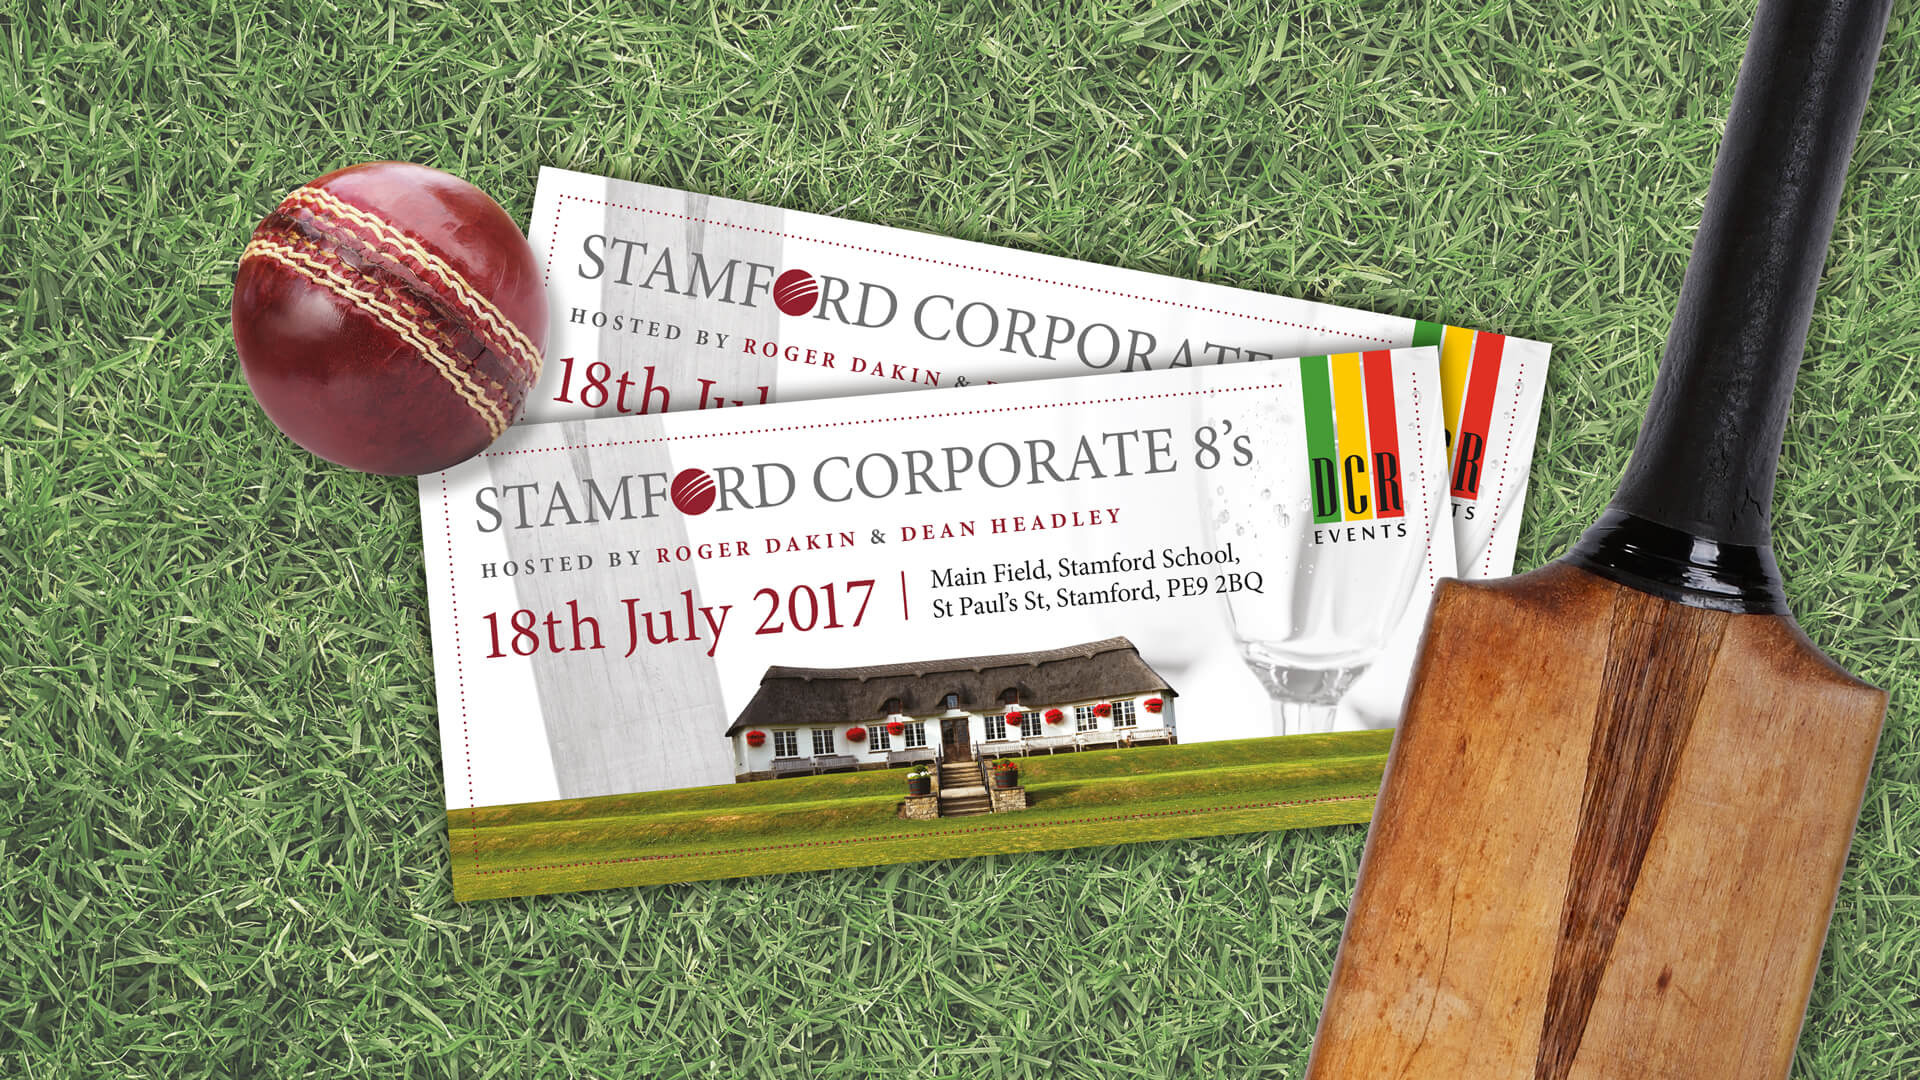 Stamford Corporate 8's Tickets